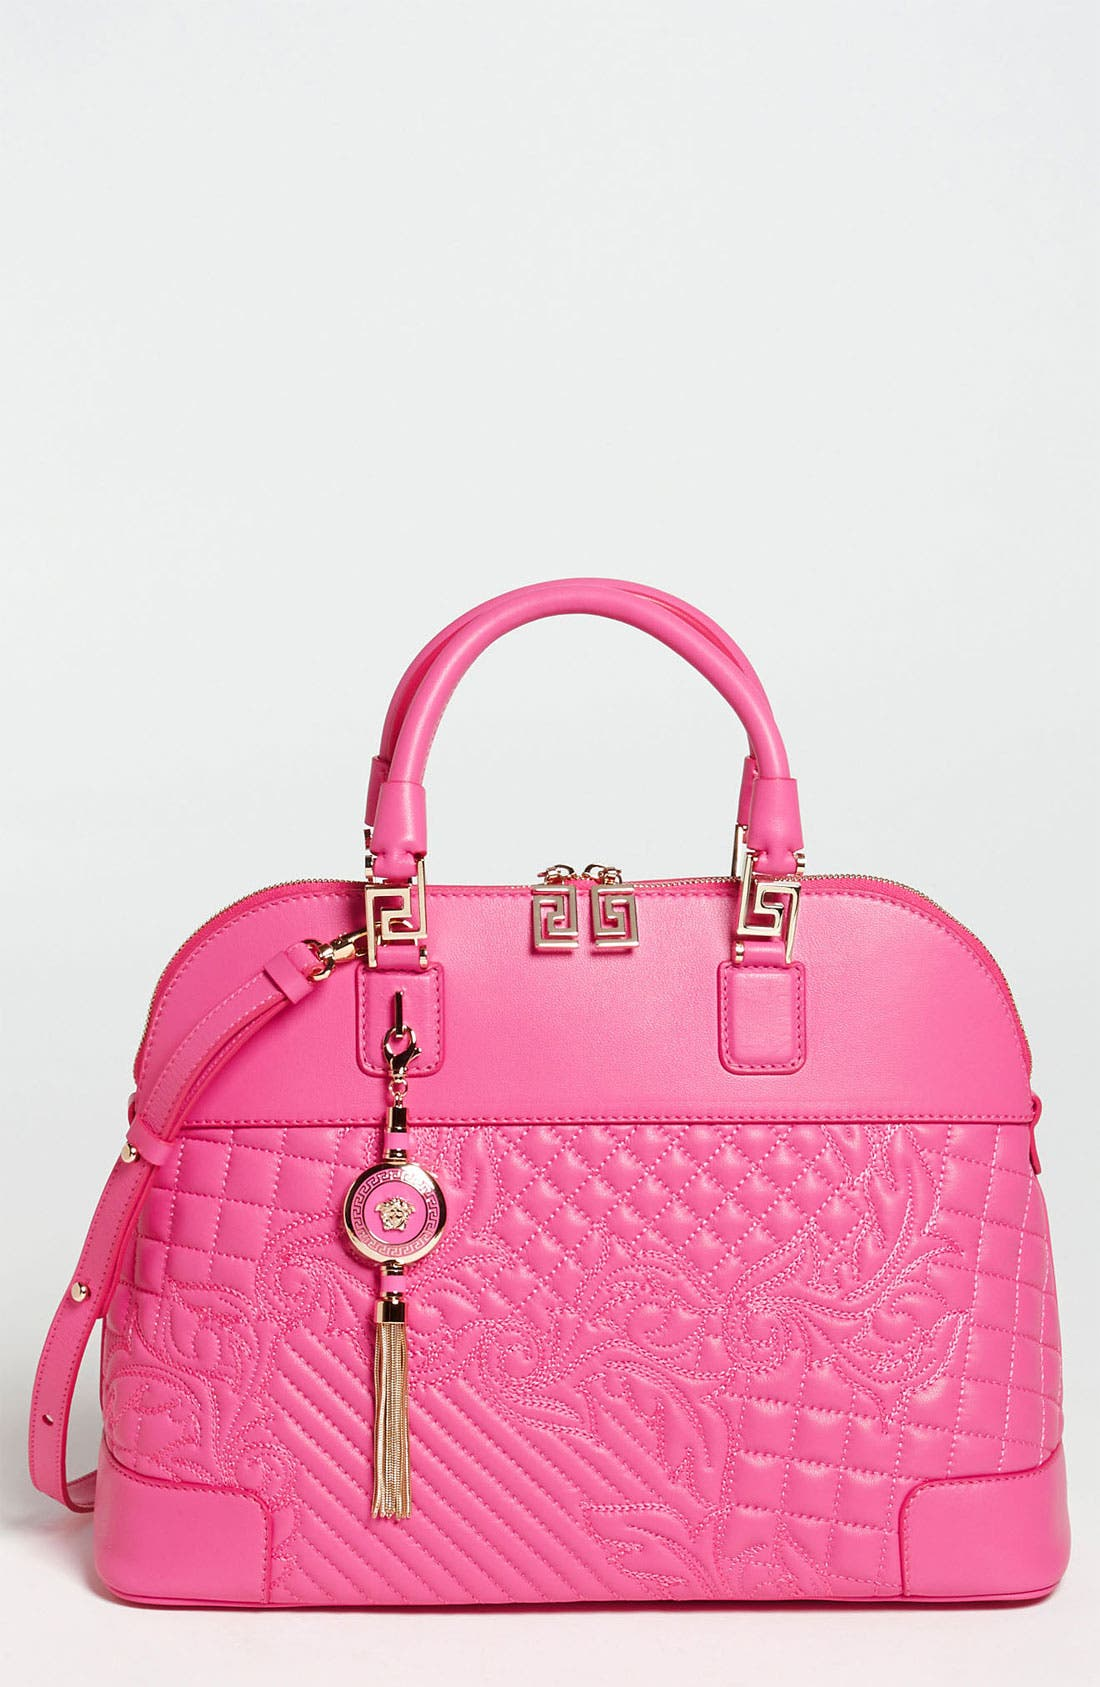 Main Image - Versace 'Vanitas' Embroidered Leather Satchel